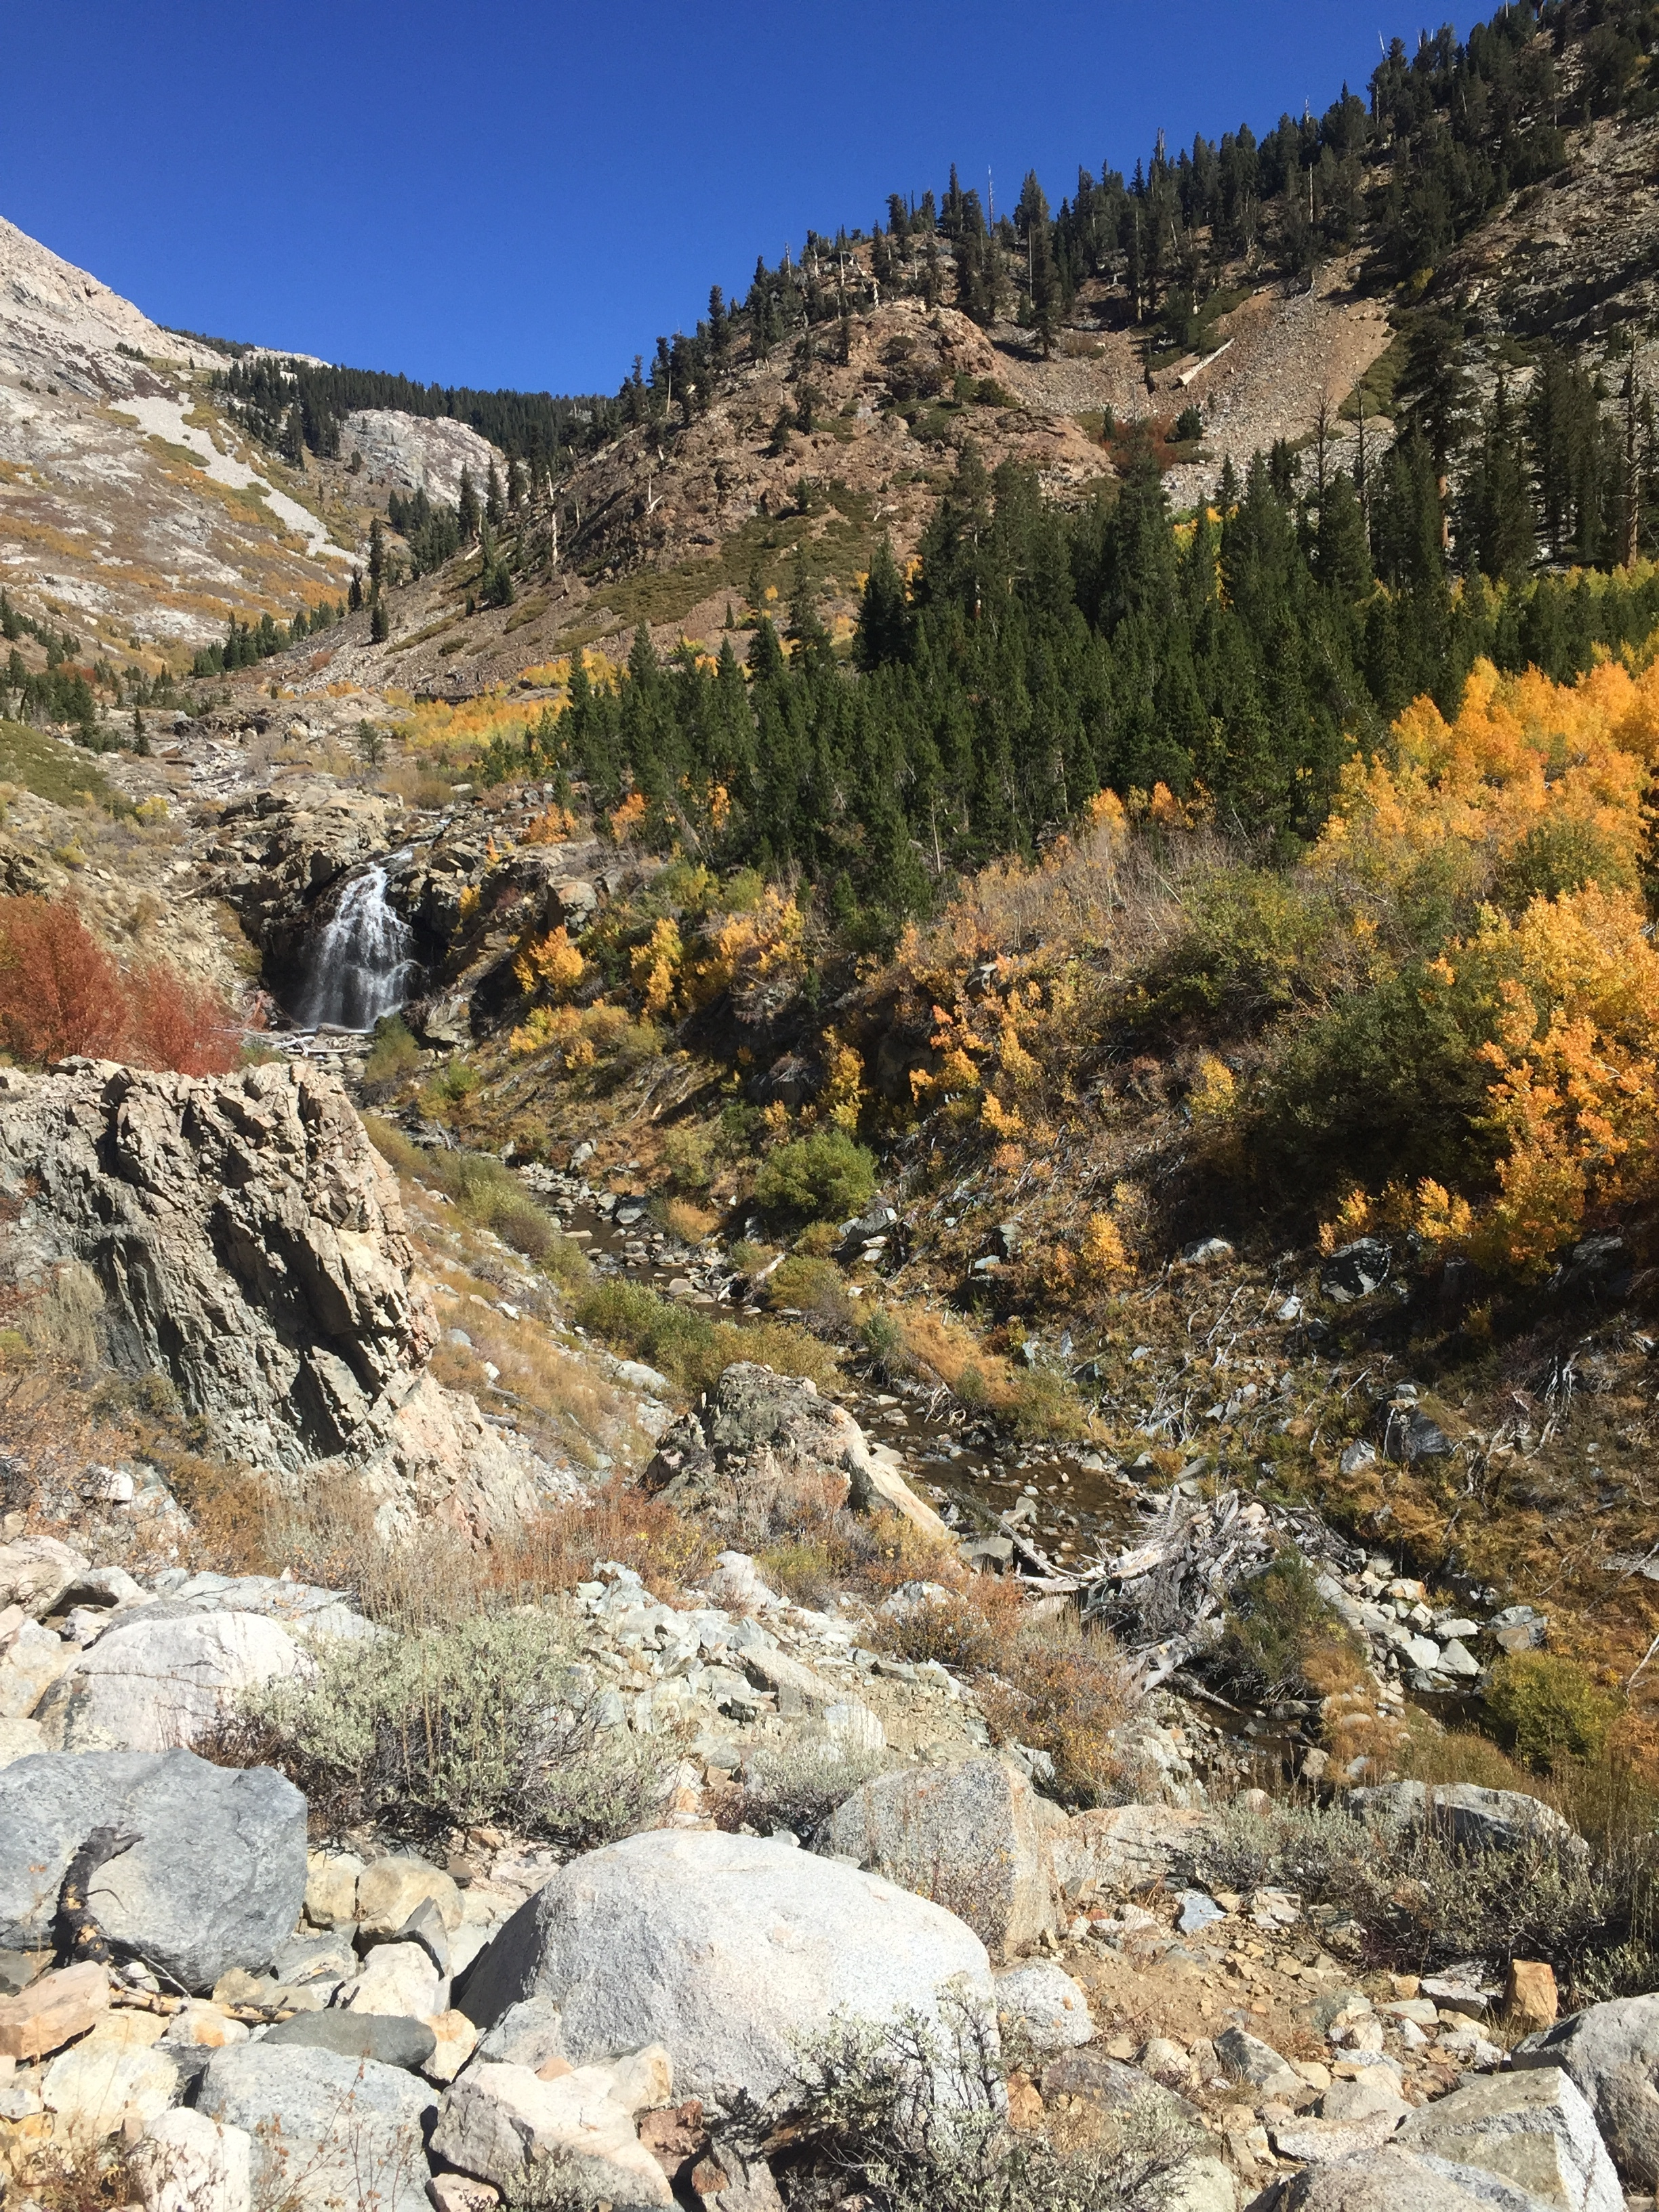 The water level in Woods Creek is a bit low, but it is running well enough to cascade along this hillside of brilliant fall aspens